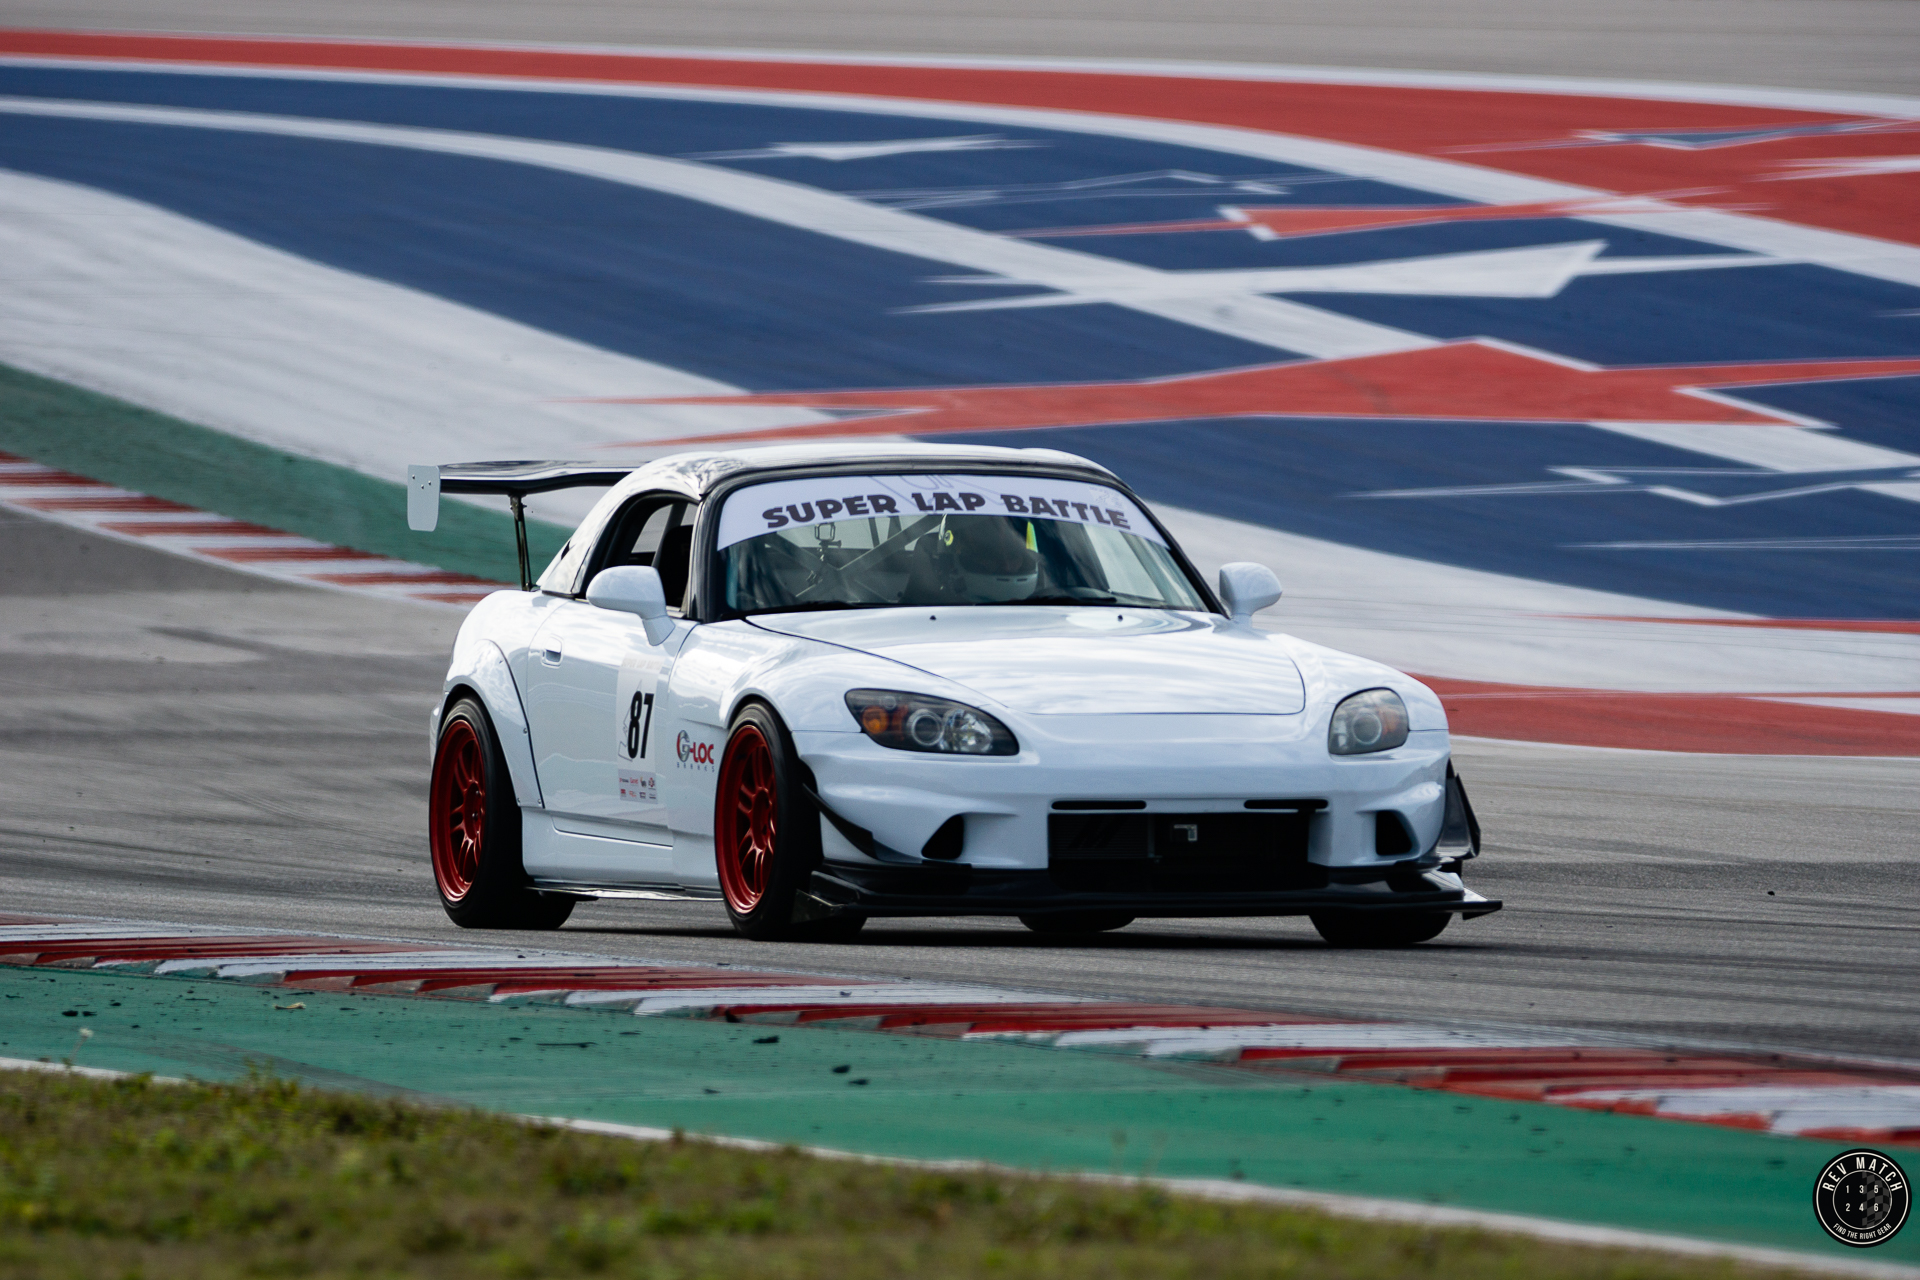 Super Lap Battle COTA Rev Match Media-342.jpg